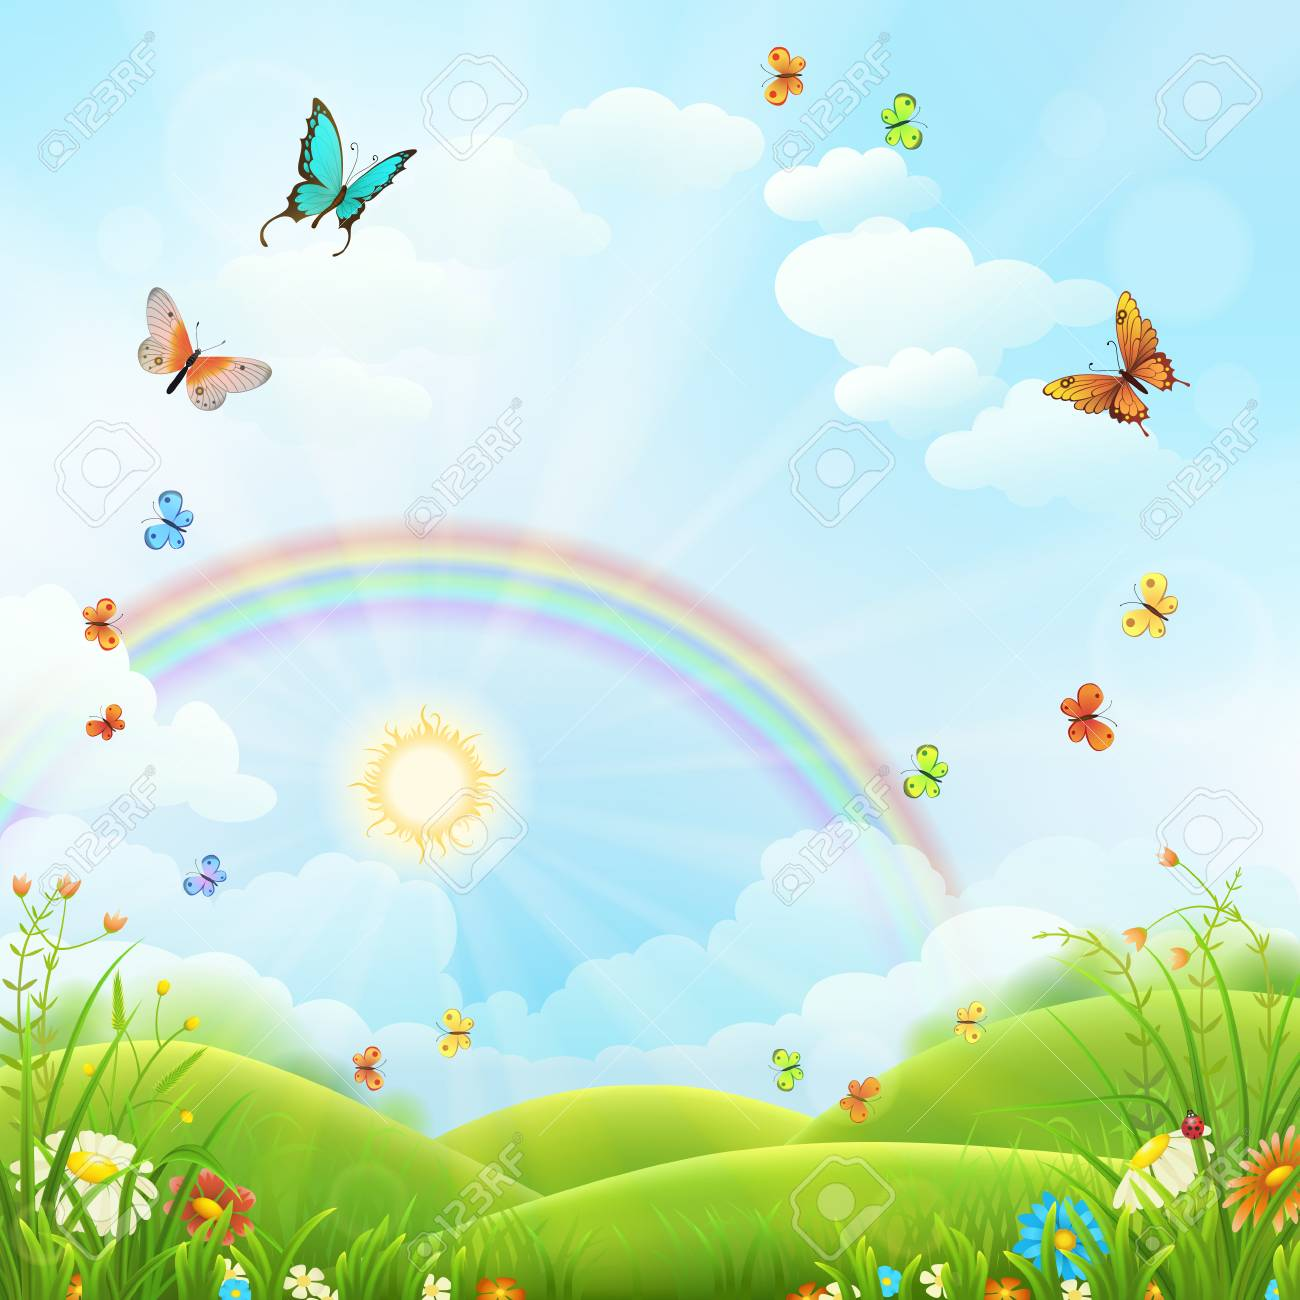 Nature background with green grass, flowers and rainbow - 98486774